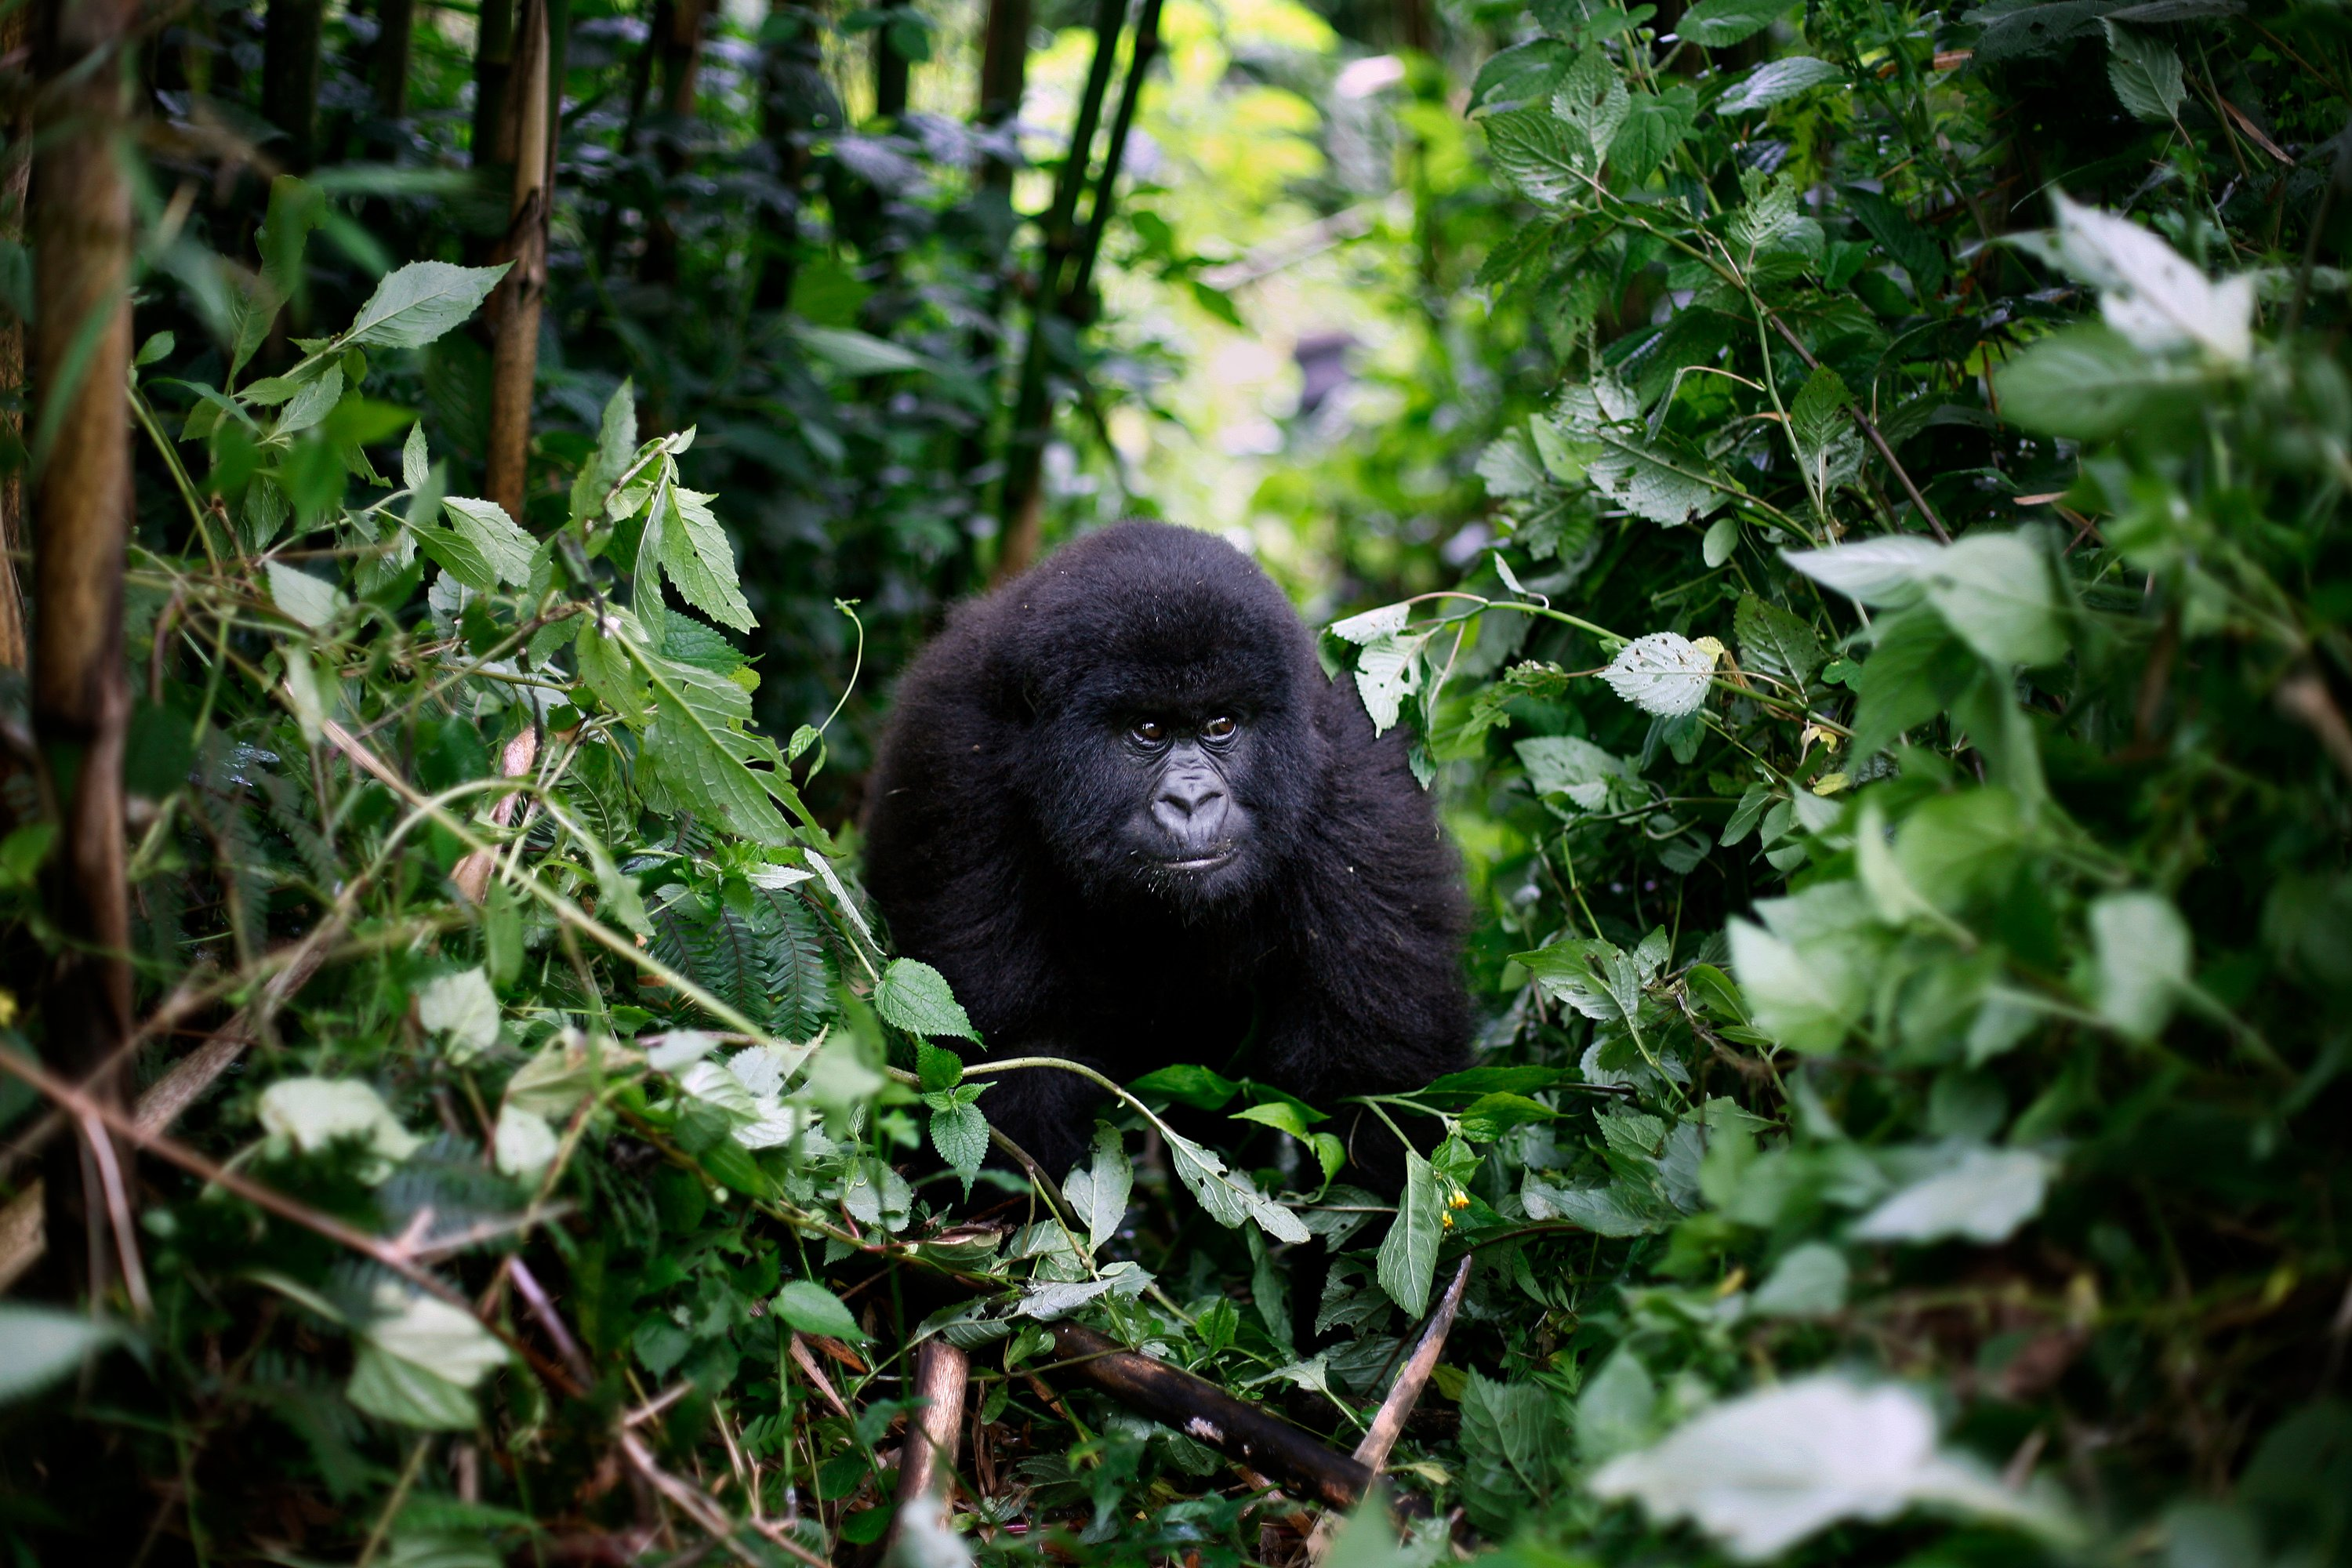 Protecting Gorillas and Chimpanzees from Covid-19